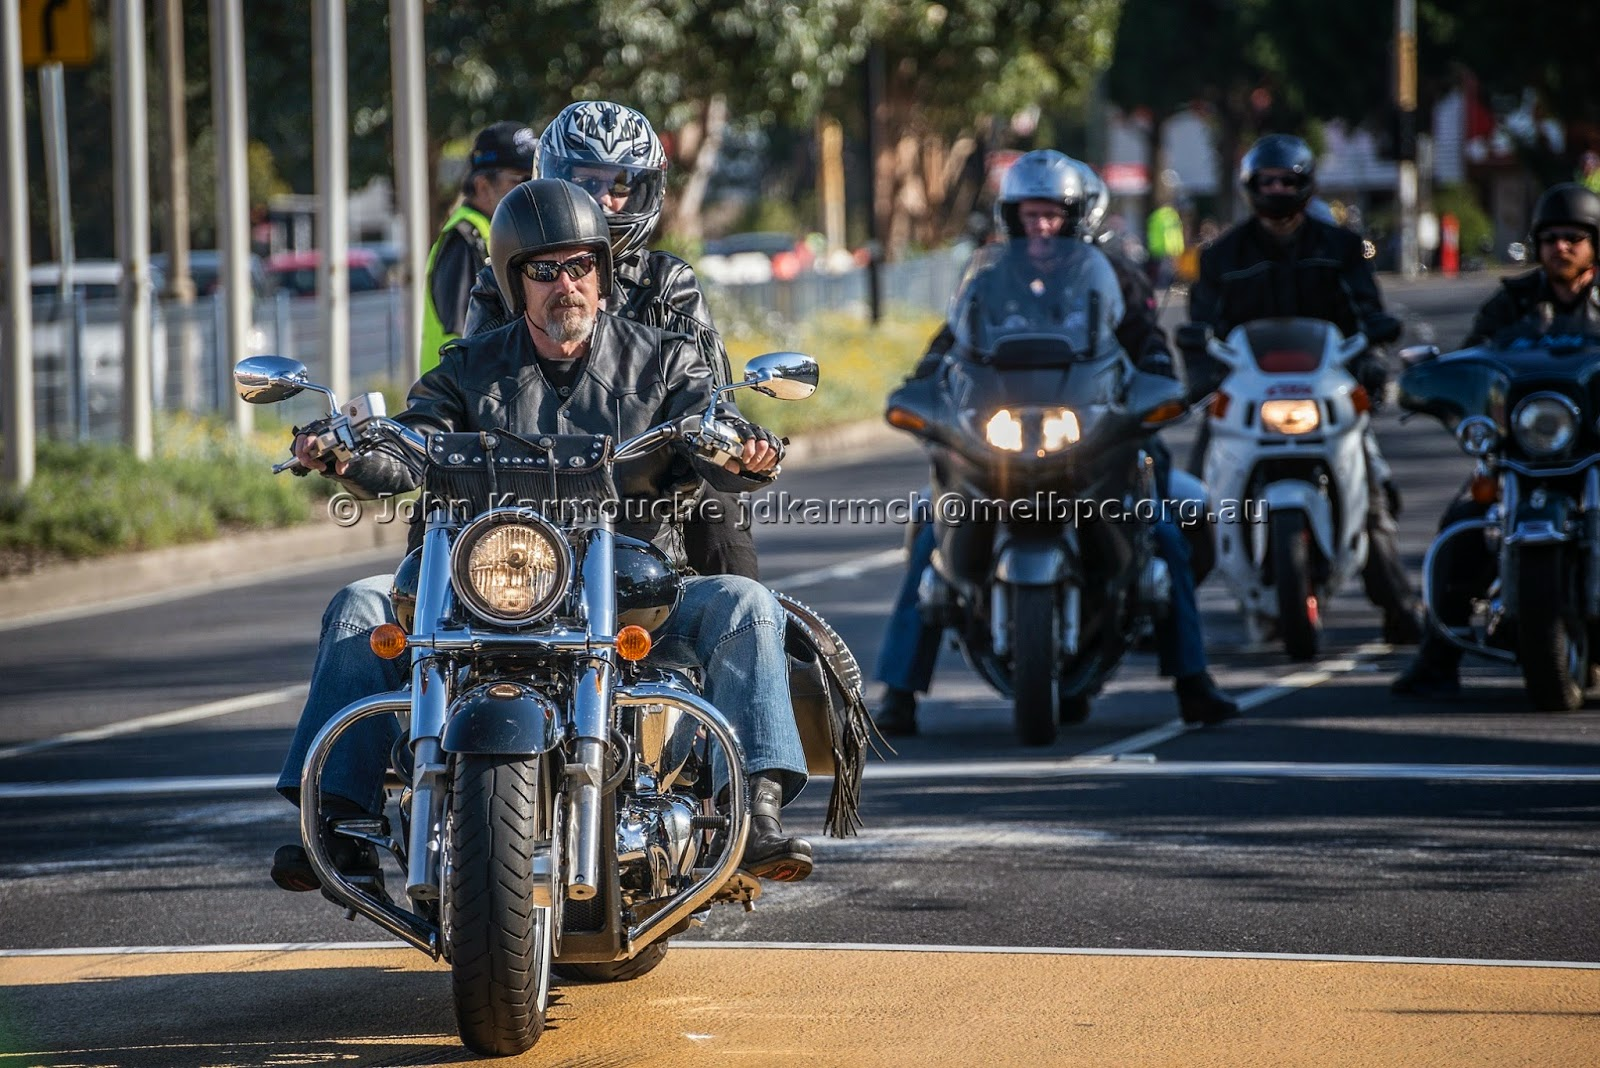 Harley Davidson arrives at Cranbourne Moto GP Run